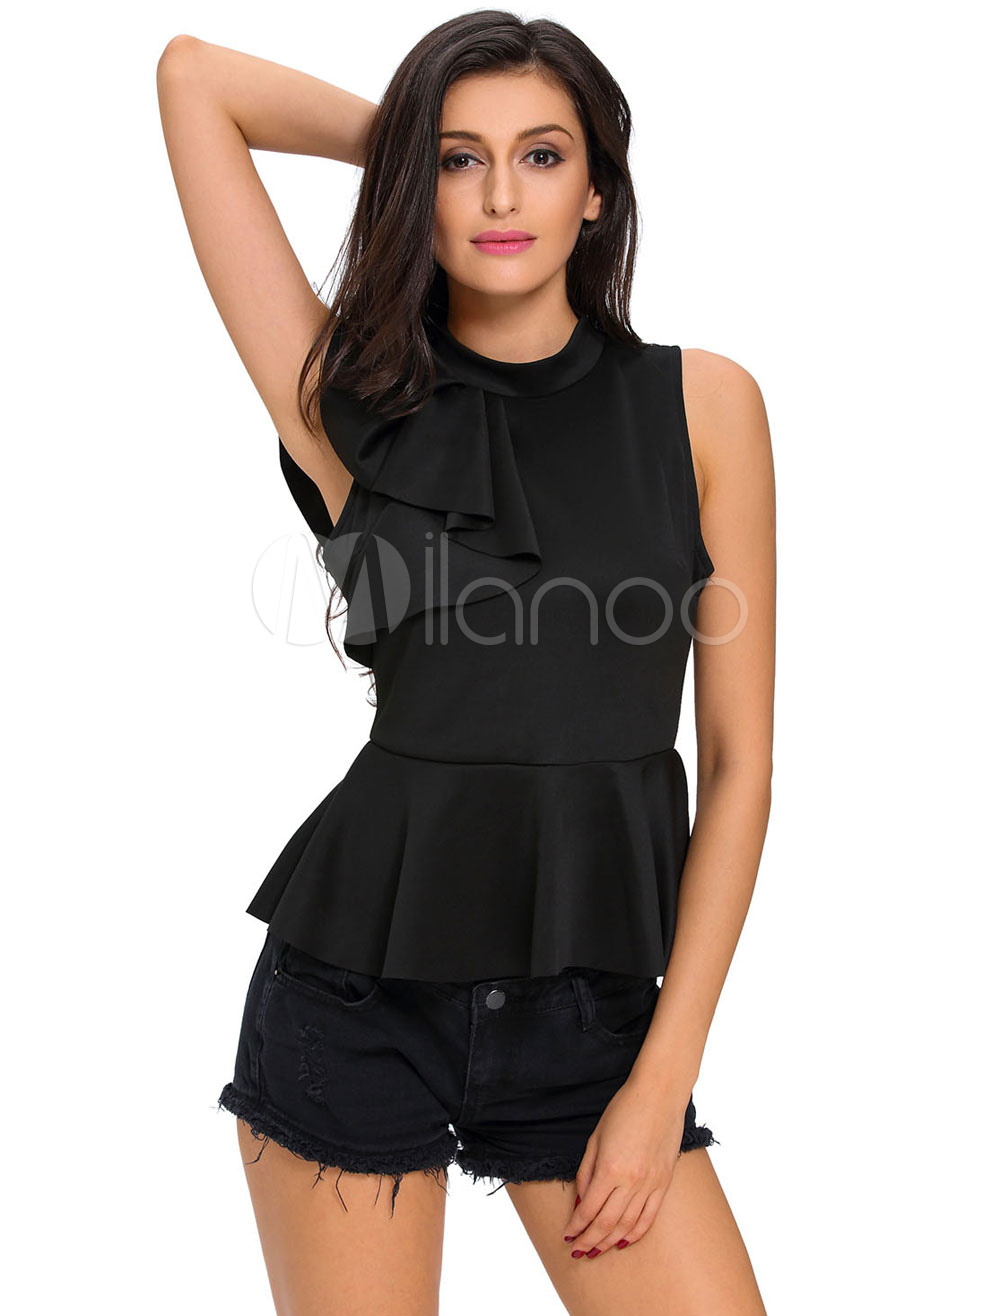 White Ruffled Blouse Women's High Waisted Sleeveless Top Cheap clothes, free shipping worldwide